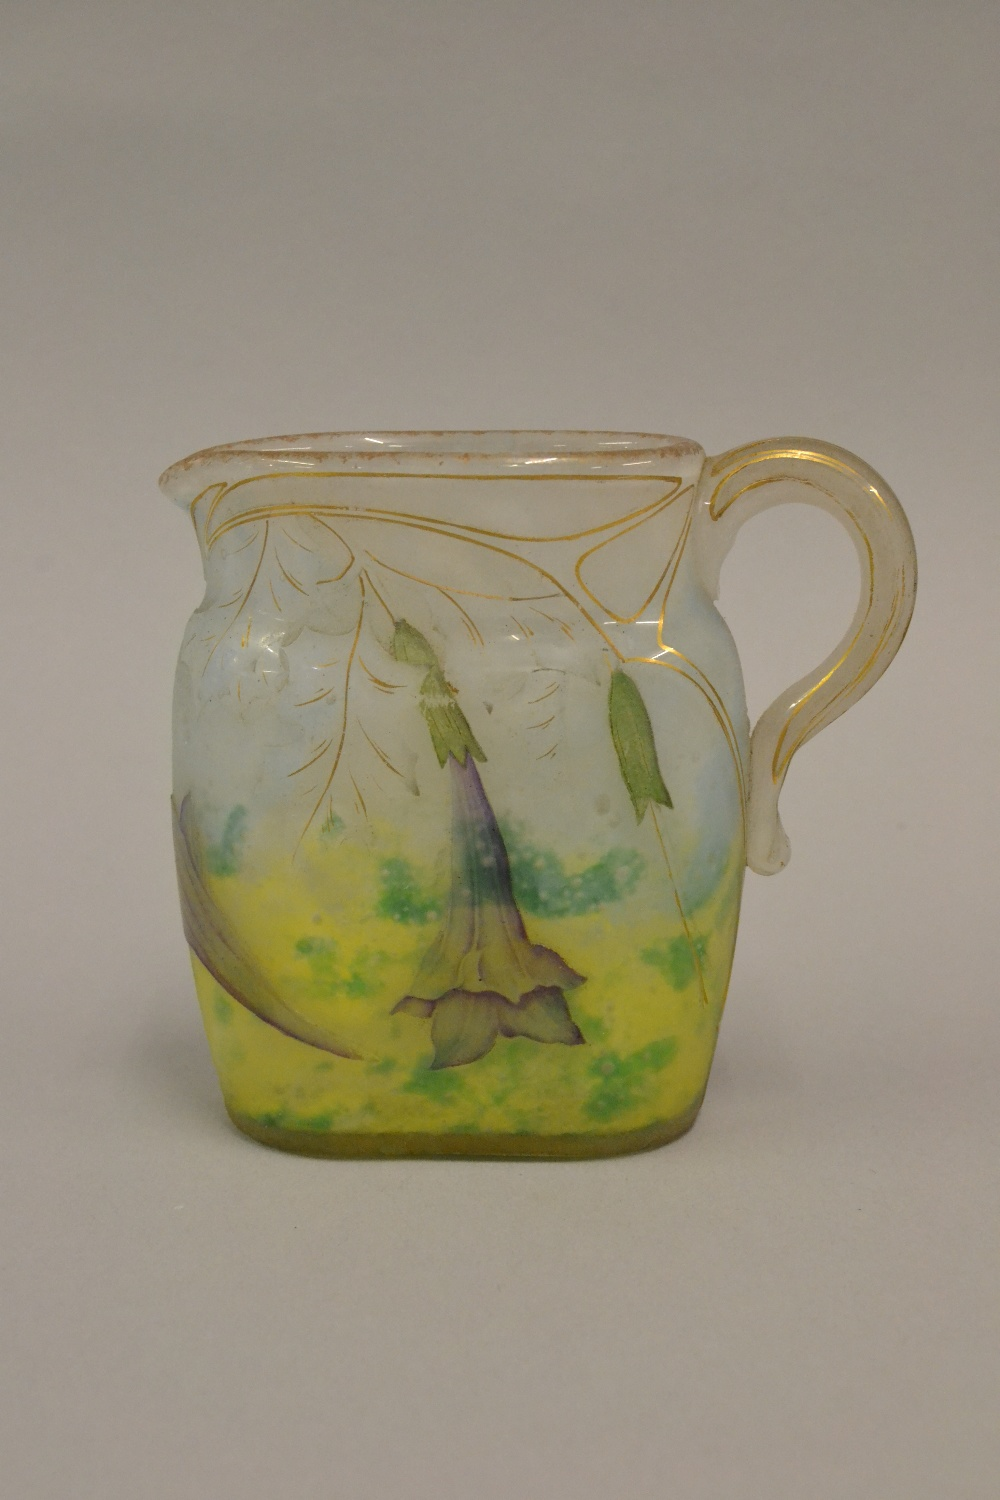 Lot 721 - Daum Nancy cameo glass miniature jug of oval form, carved in shallow relief with trailing flowers,